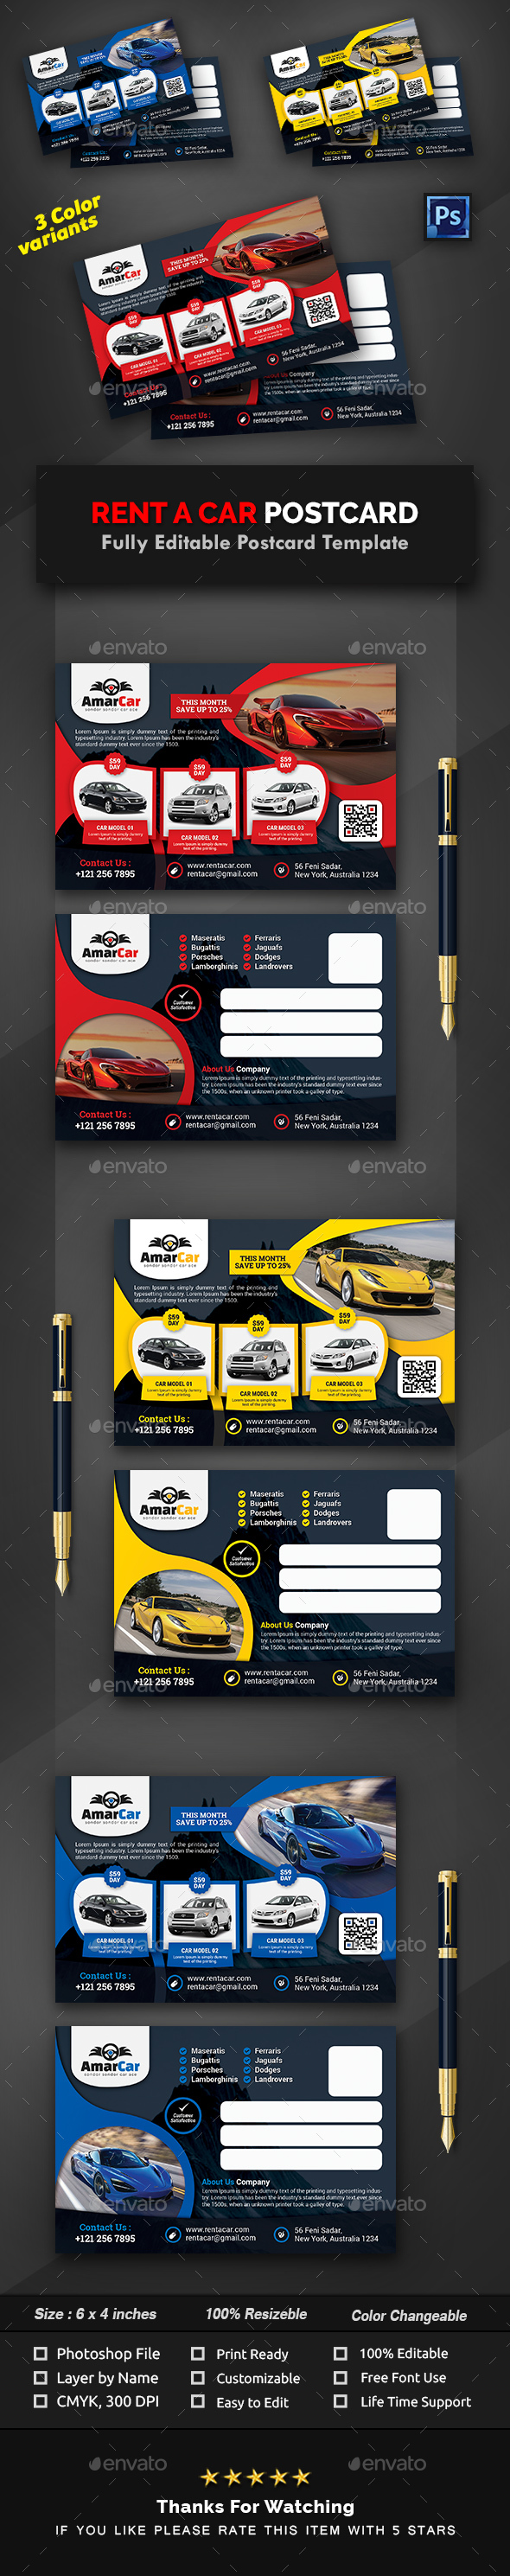 Rent a Car Postcard Templates - Cards & Invites Print Templates